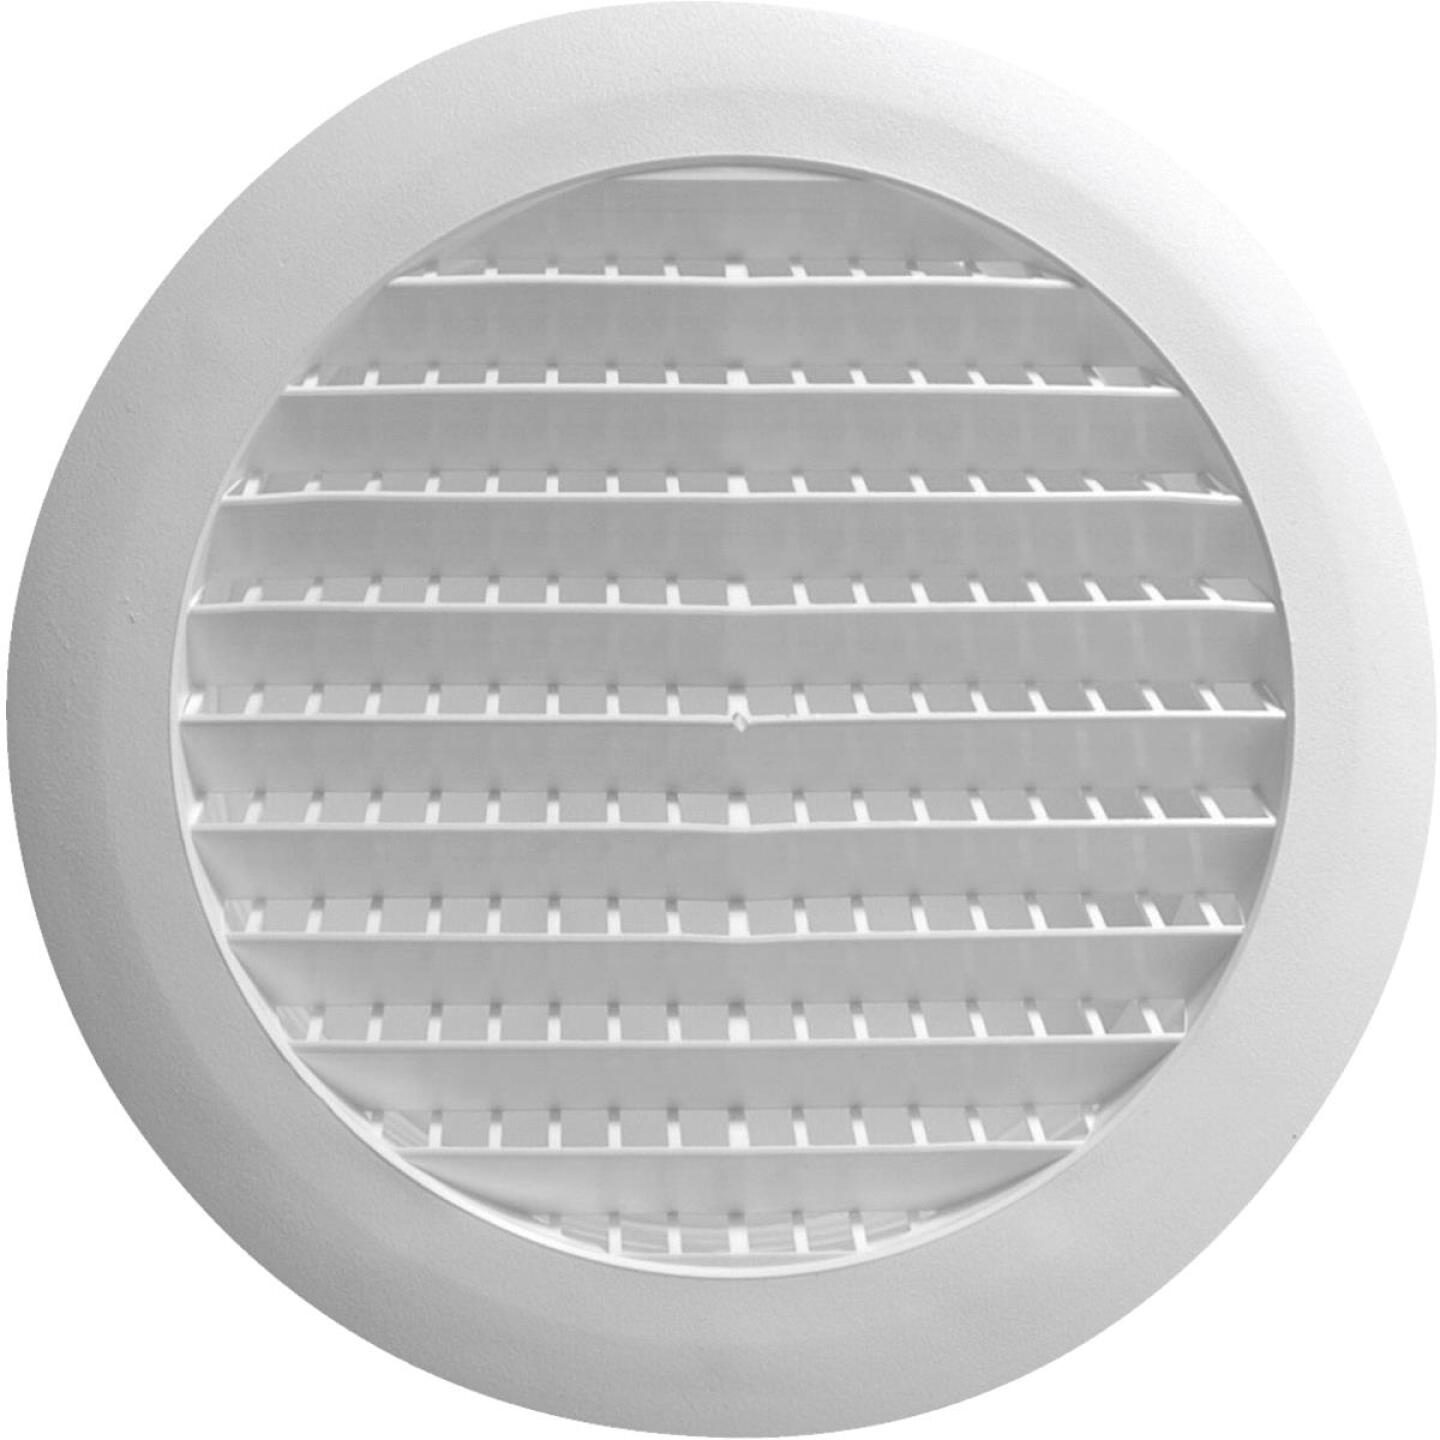 Builders Best 6 In. White Plastic Round Eave & Soffit Vent Image 1